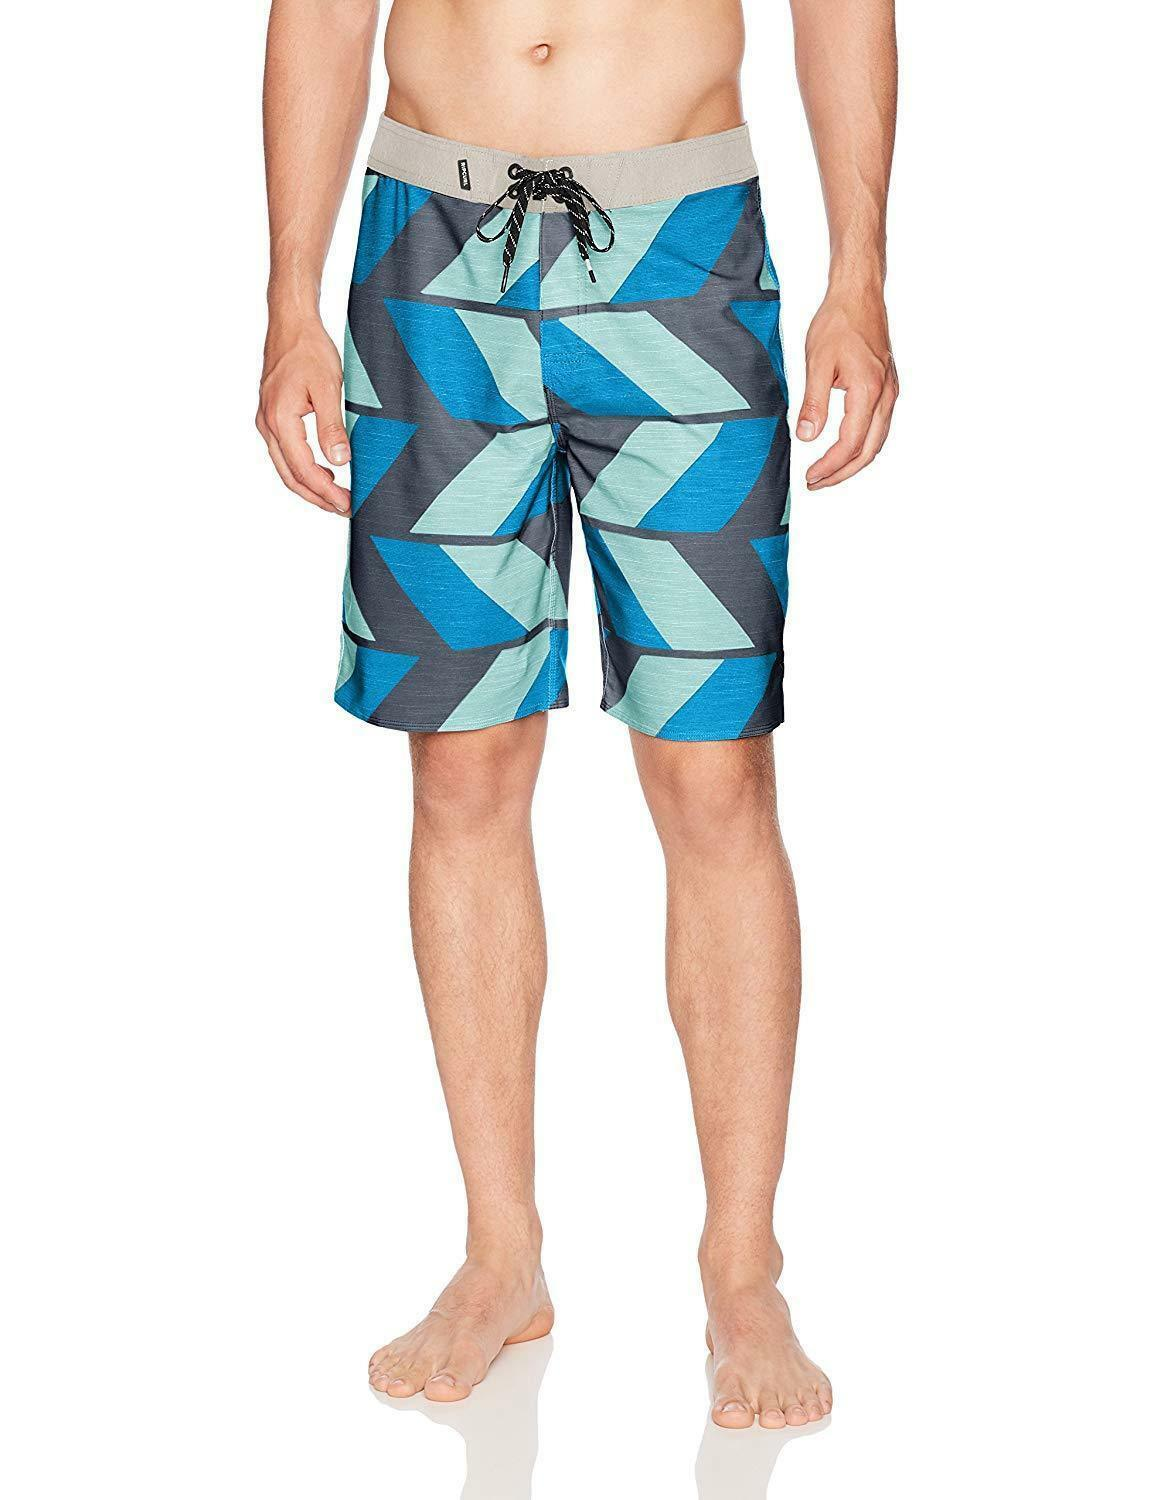 Rip Curl Men's Mirage Pentex Boardshorts Stretch Surf Shorts Size 34 - CBONG7